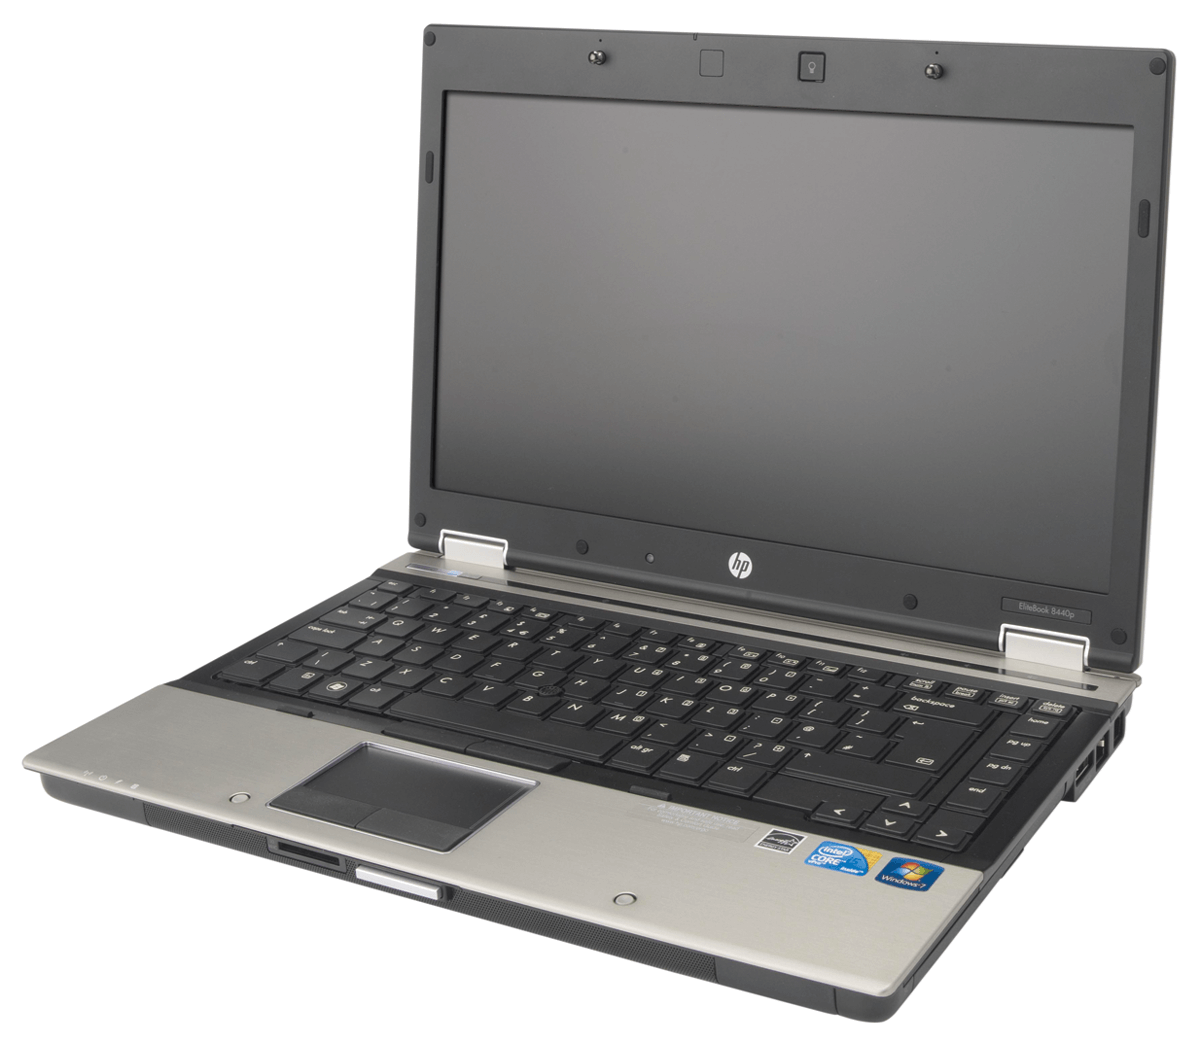 HP ELITEBOOK 8440P I5-540M 2,53 / 4096 MB DDR3 / 120 GB SSD NOWY / DVD / WINDOWS 10 PRO / 14